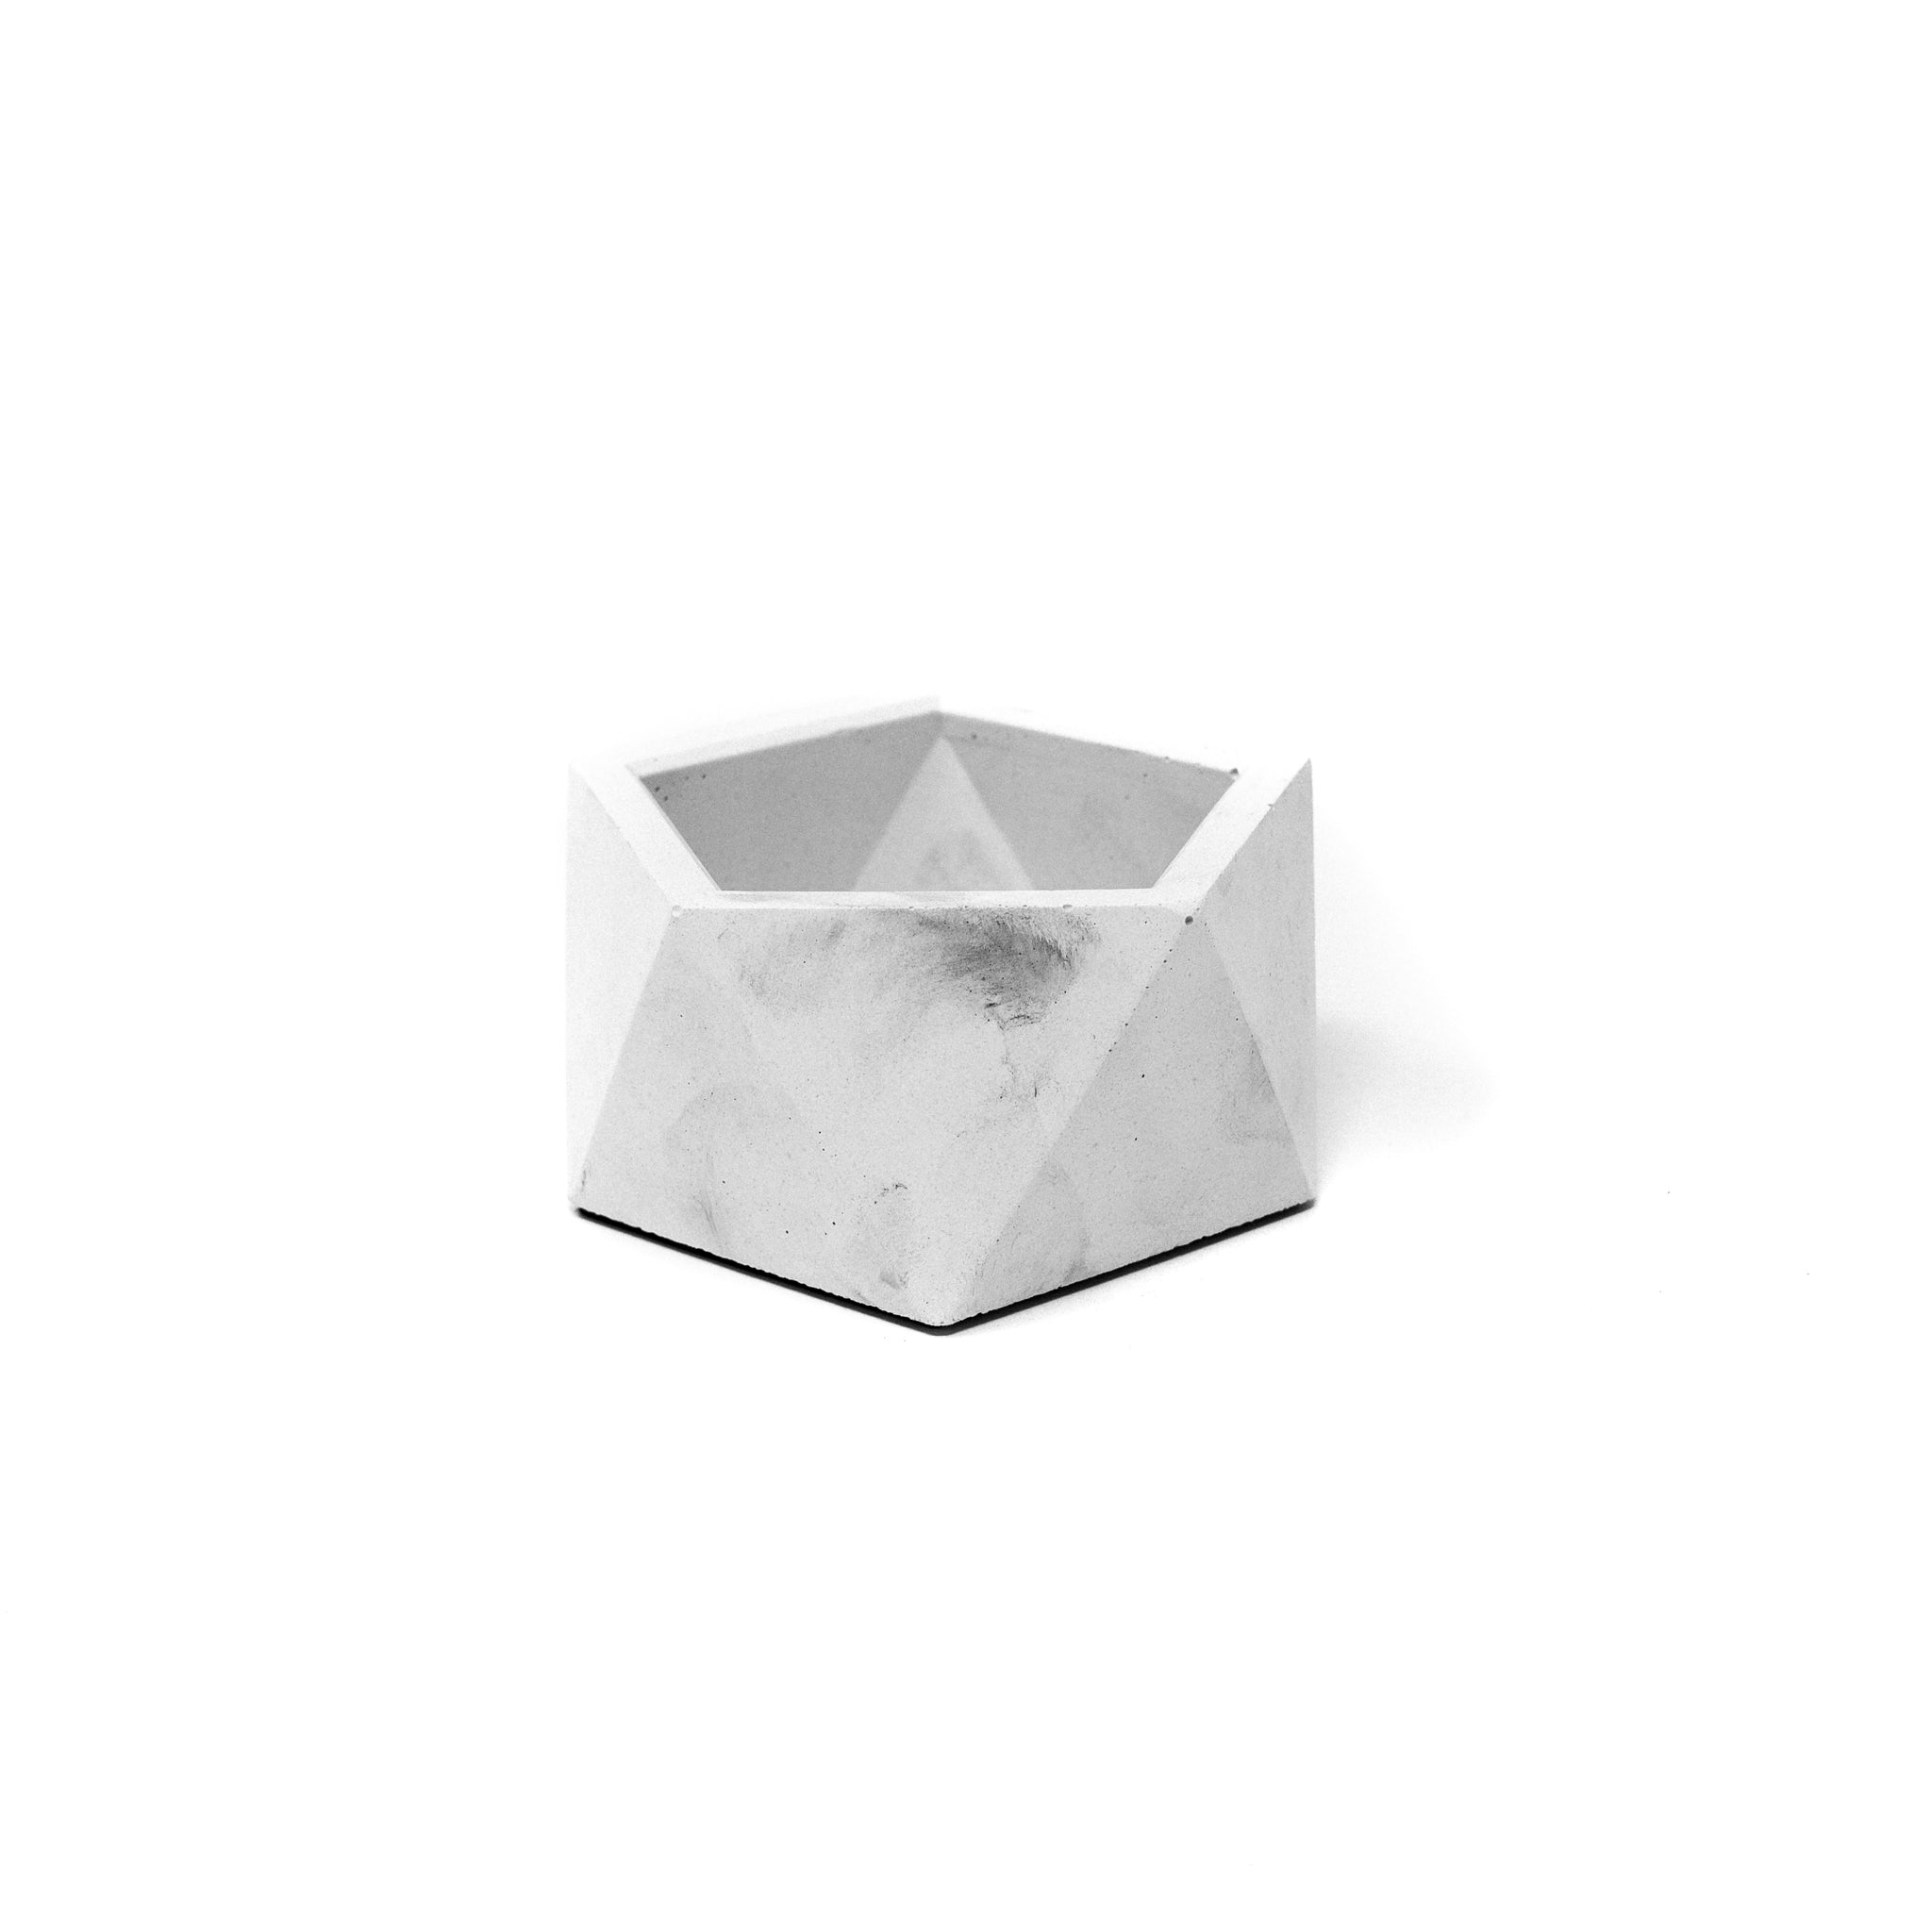 Concrete Icosahedron Planter: Small (Light Gray)